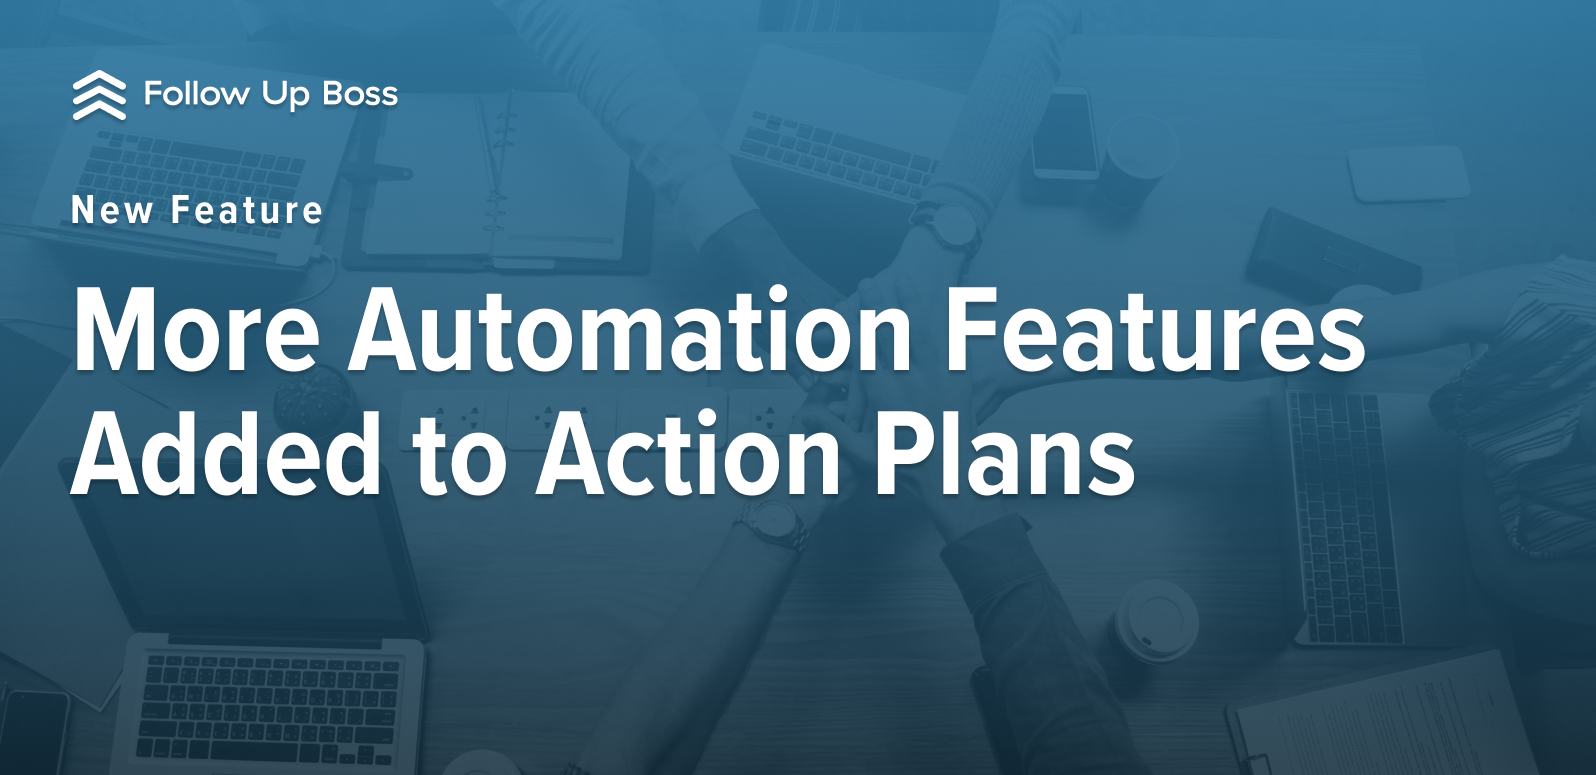 New Feature: More Automation in Action Plans